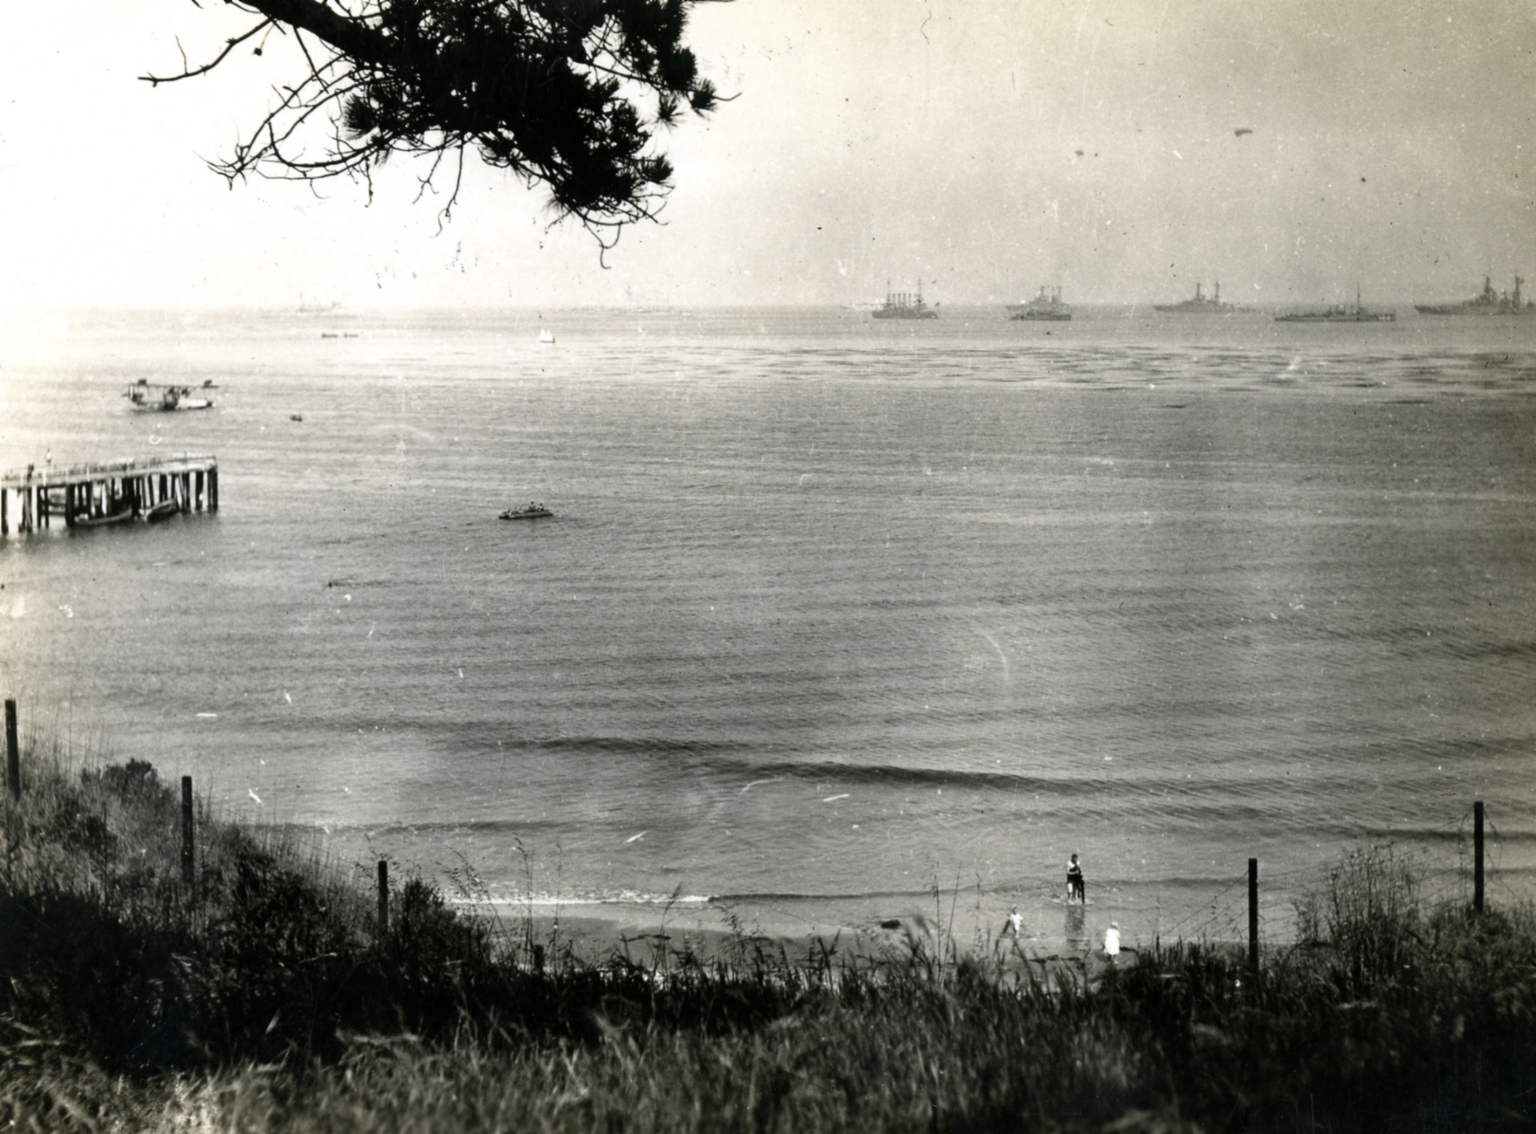 Santa Barbara - Great White Fleet